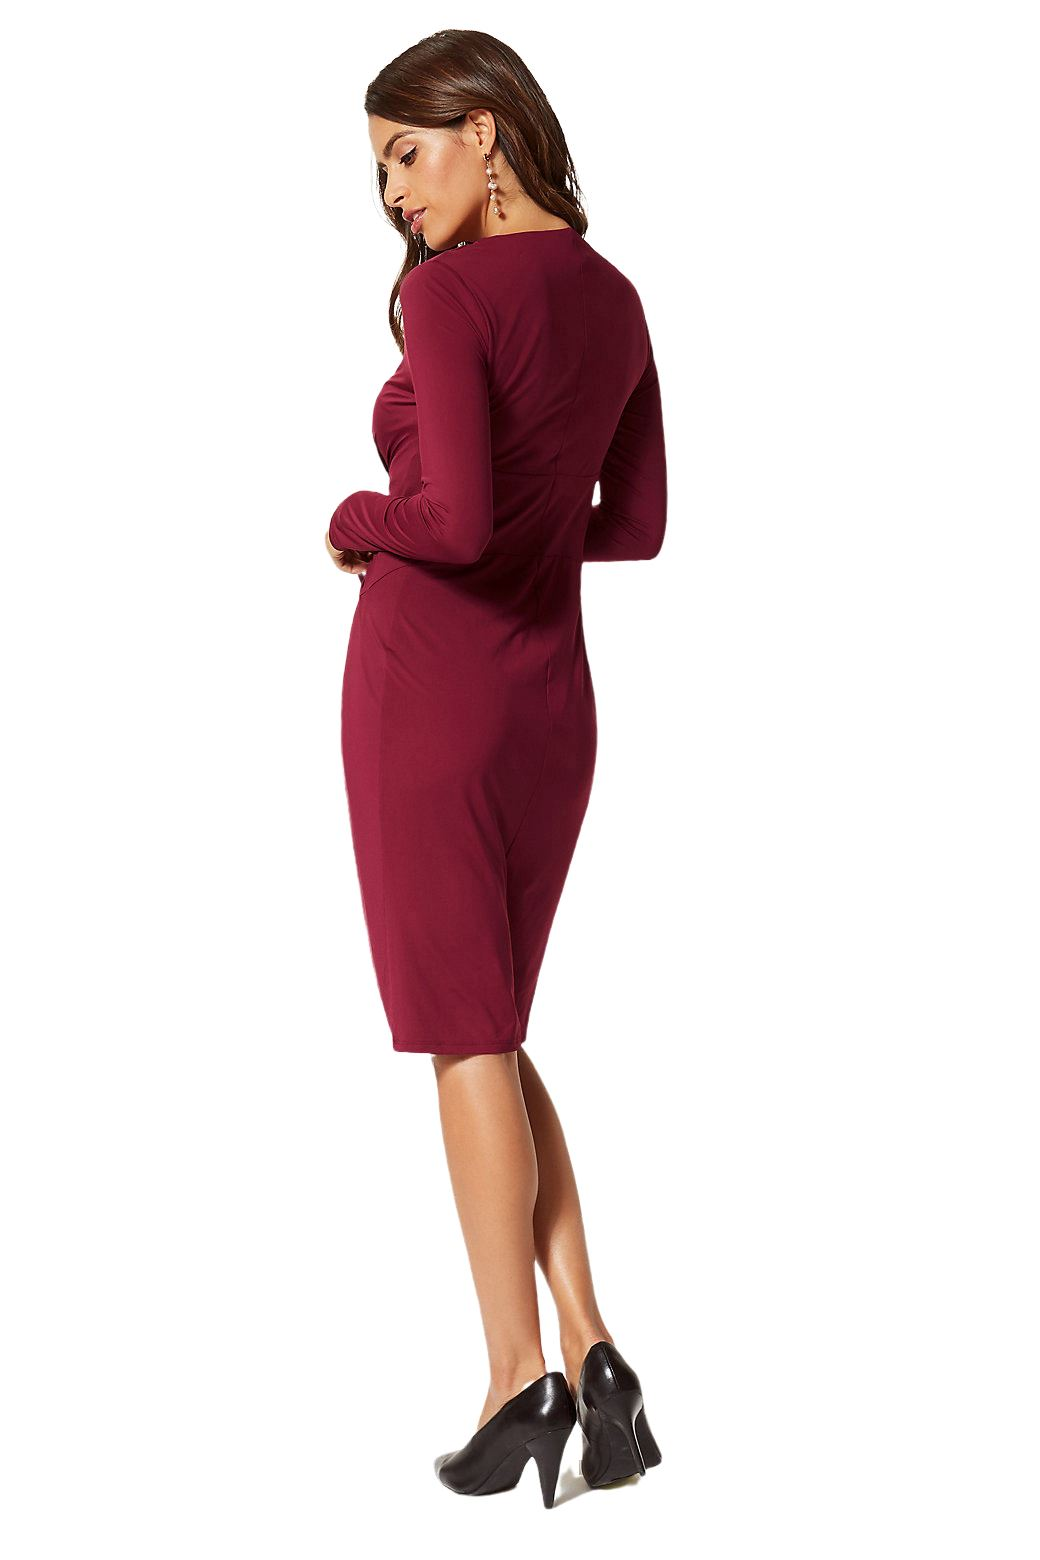 Ex-M-amp-S-Marks-Spencer-Tie-Front-Stretch-Midi-Dress-Burgundy-or-Black-Size-6-22 thumbnail 8